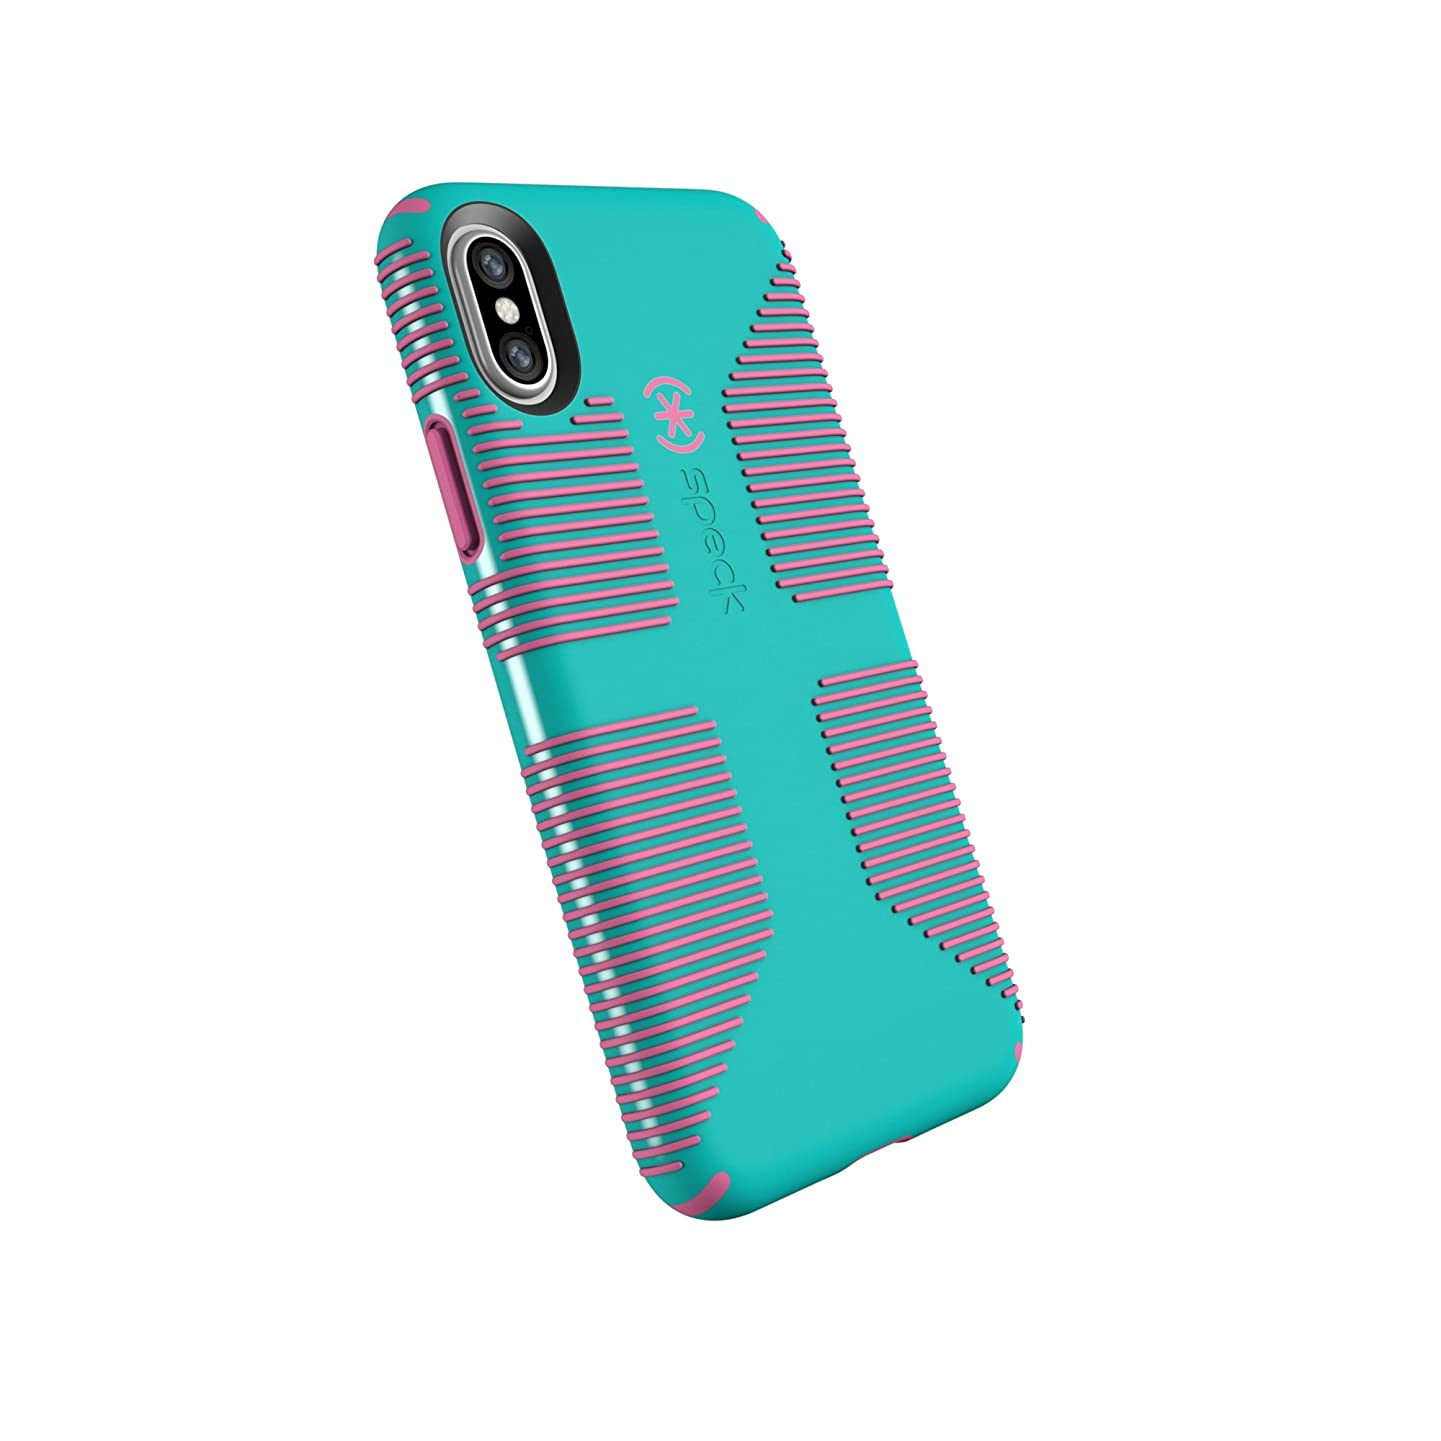 Speck Products CandyShell Grip Cell Phone Case for iPhone XS/iPhone X - Caribbean Blue/Bubblegum Pink